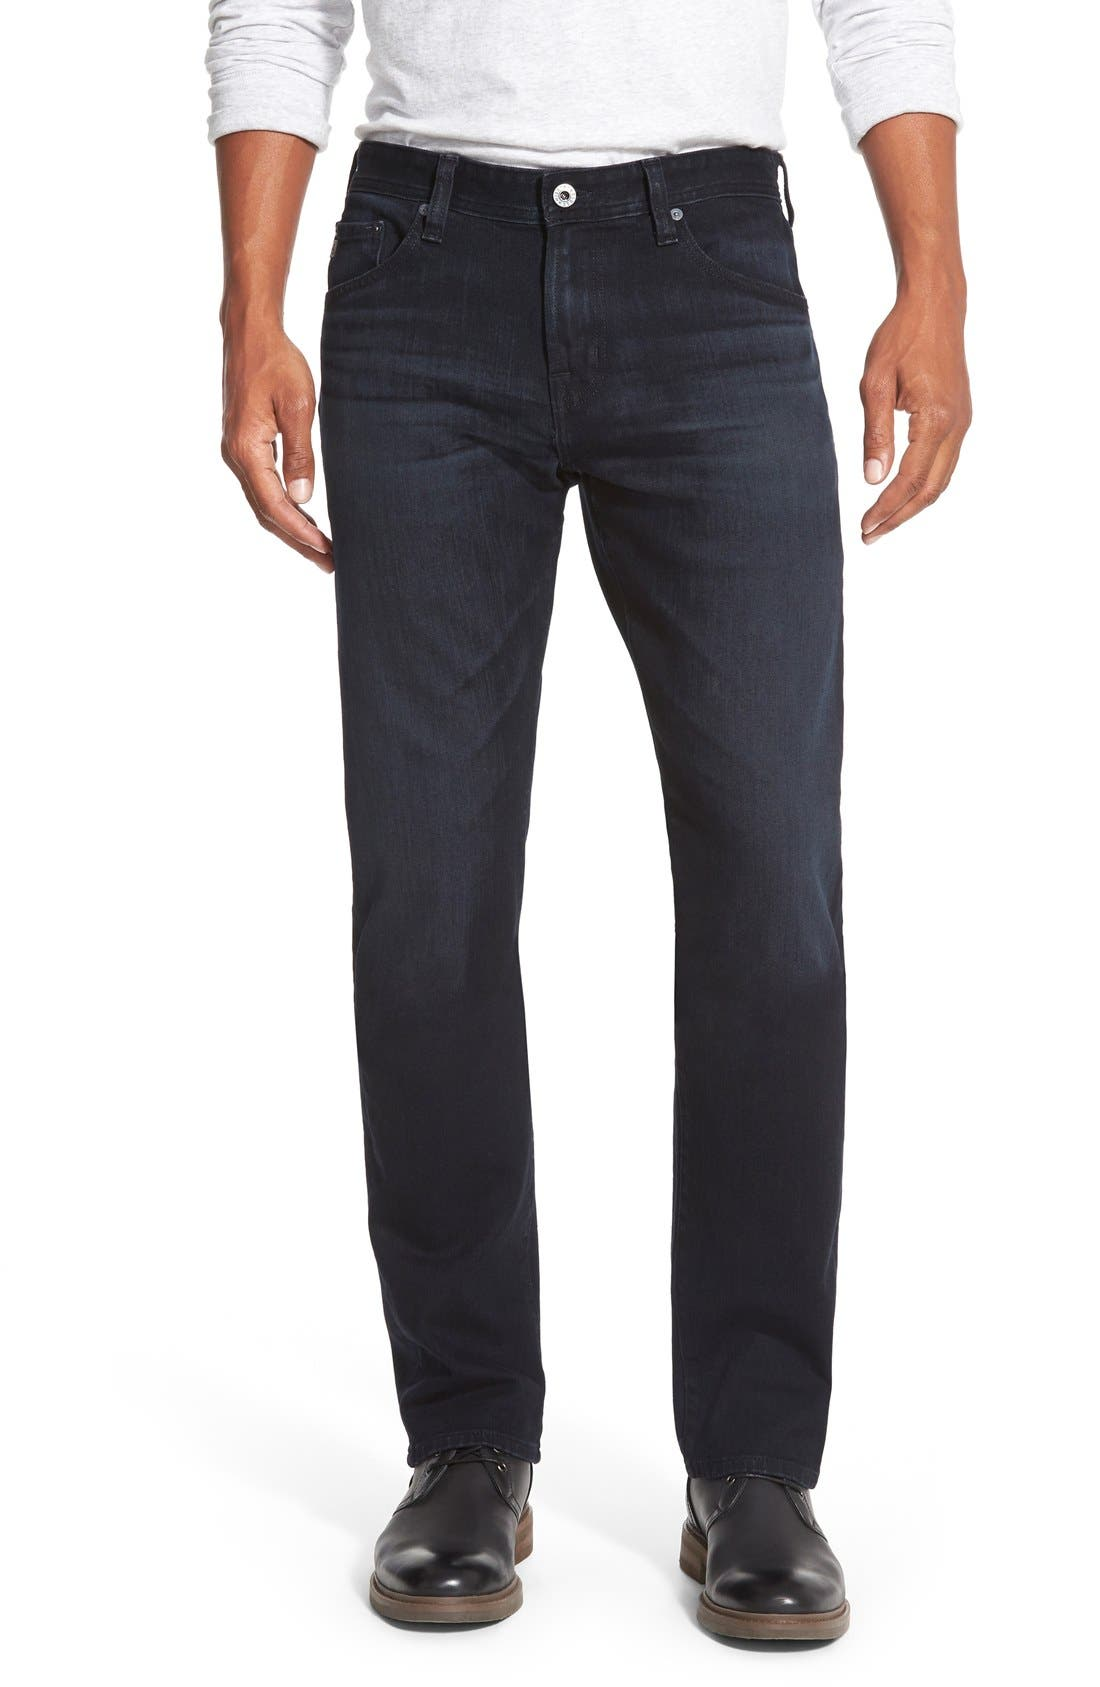 Graduate Slim Straight Leg Jeans,                         Main,                         color, Bundled